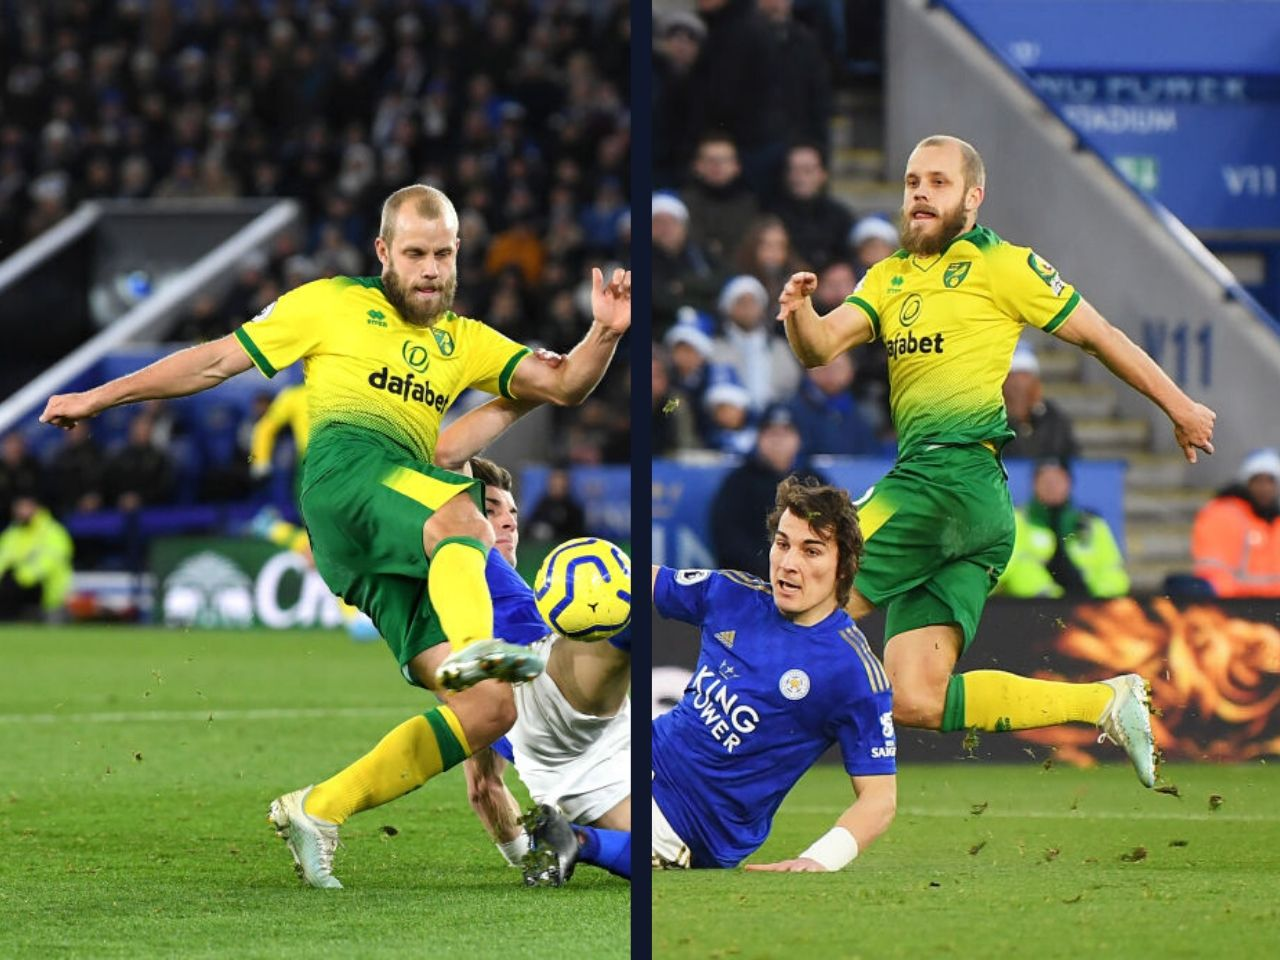 Temmu Pukki, Norwich City, Premier League